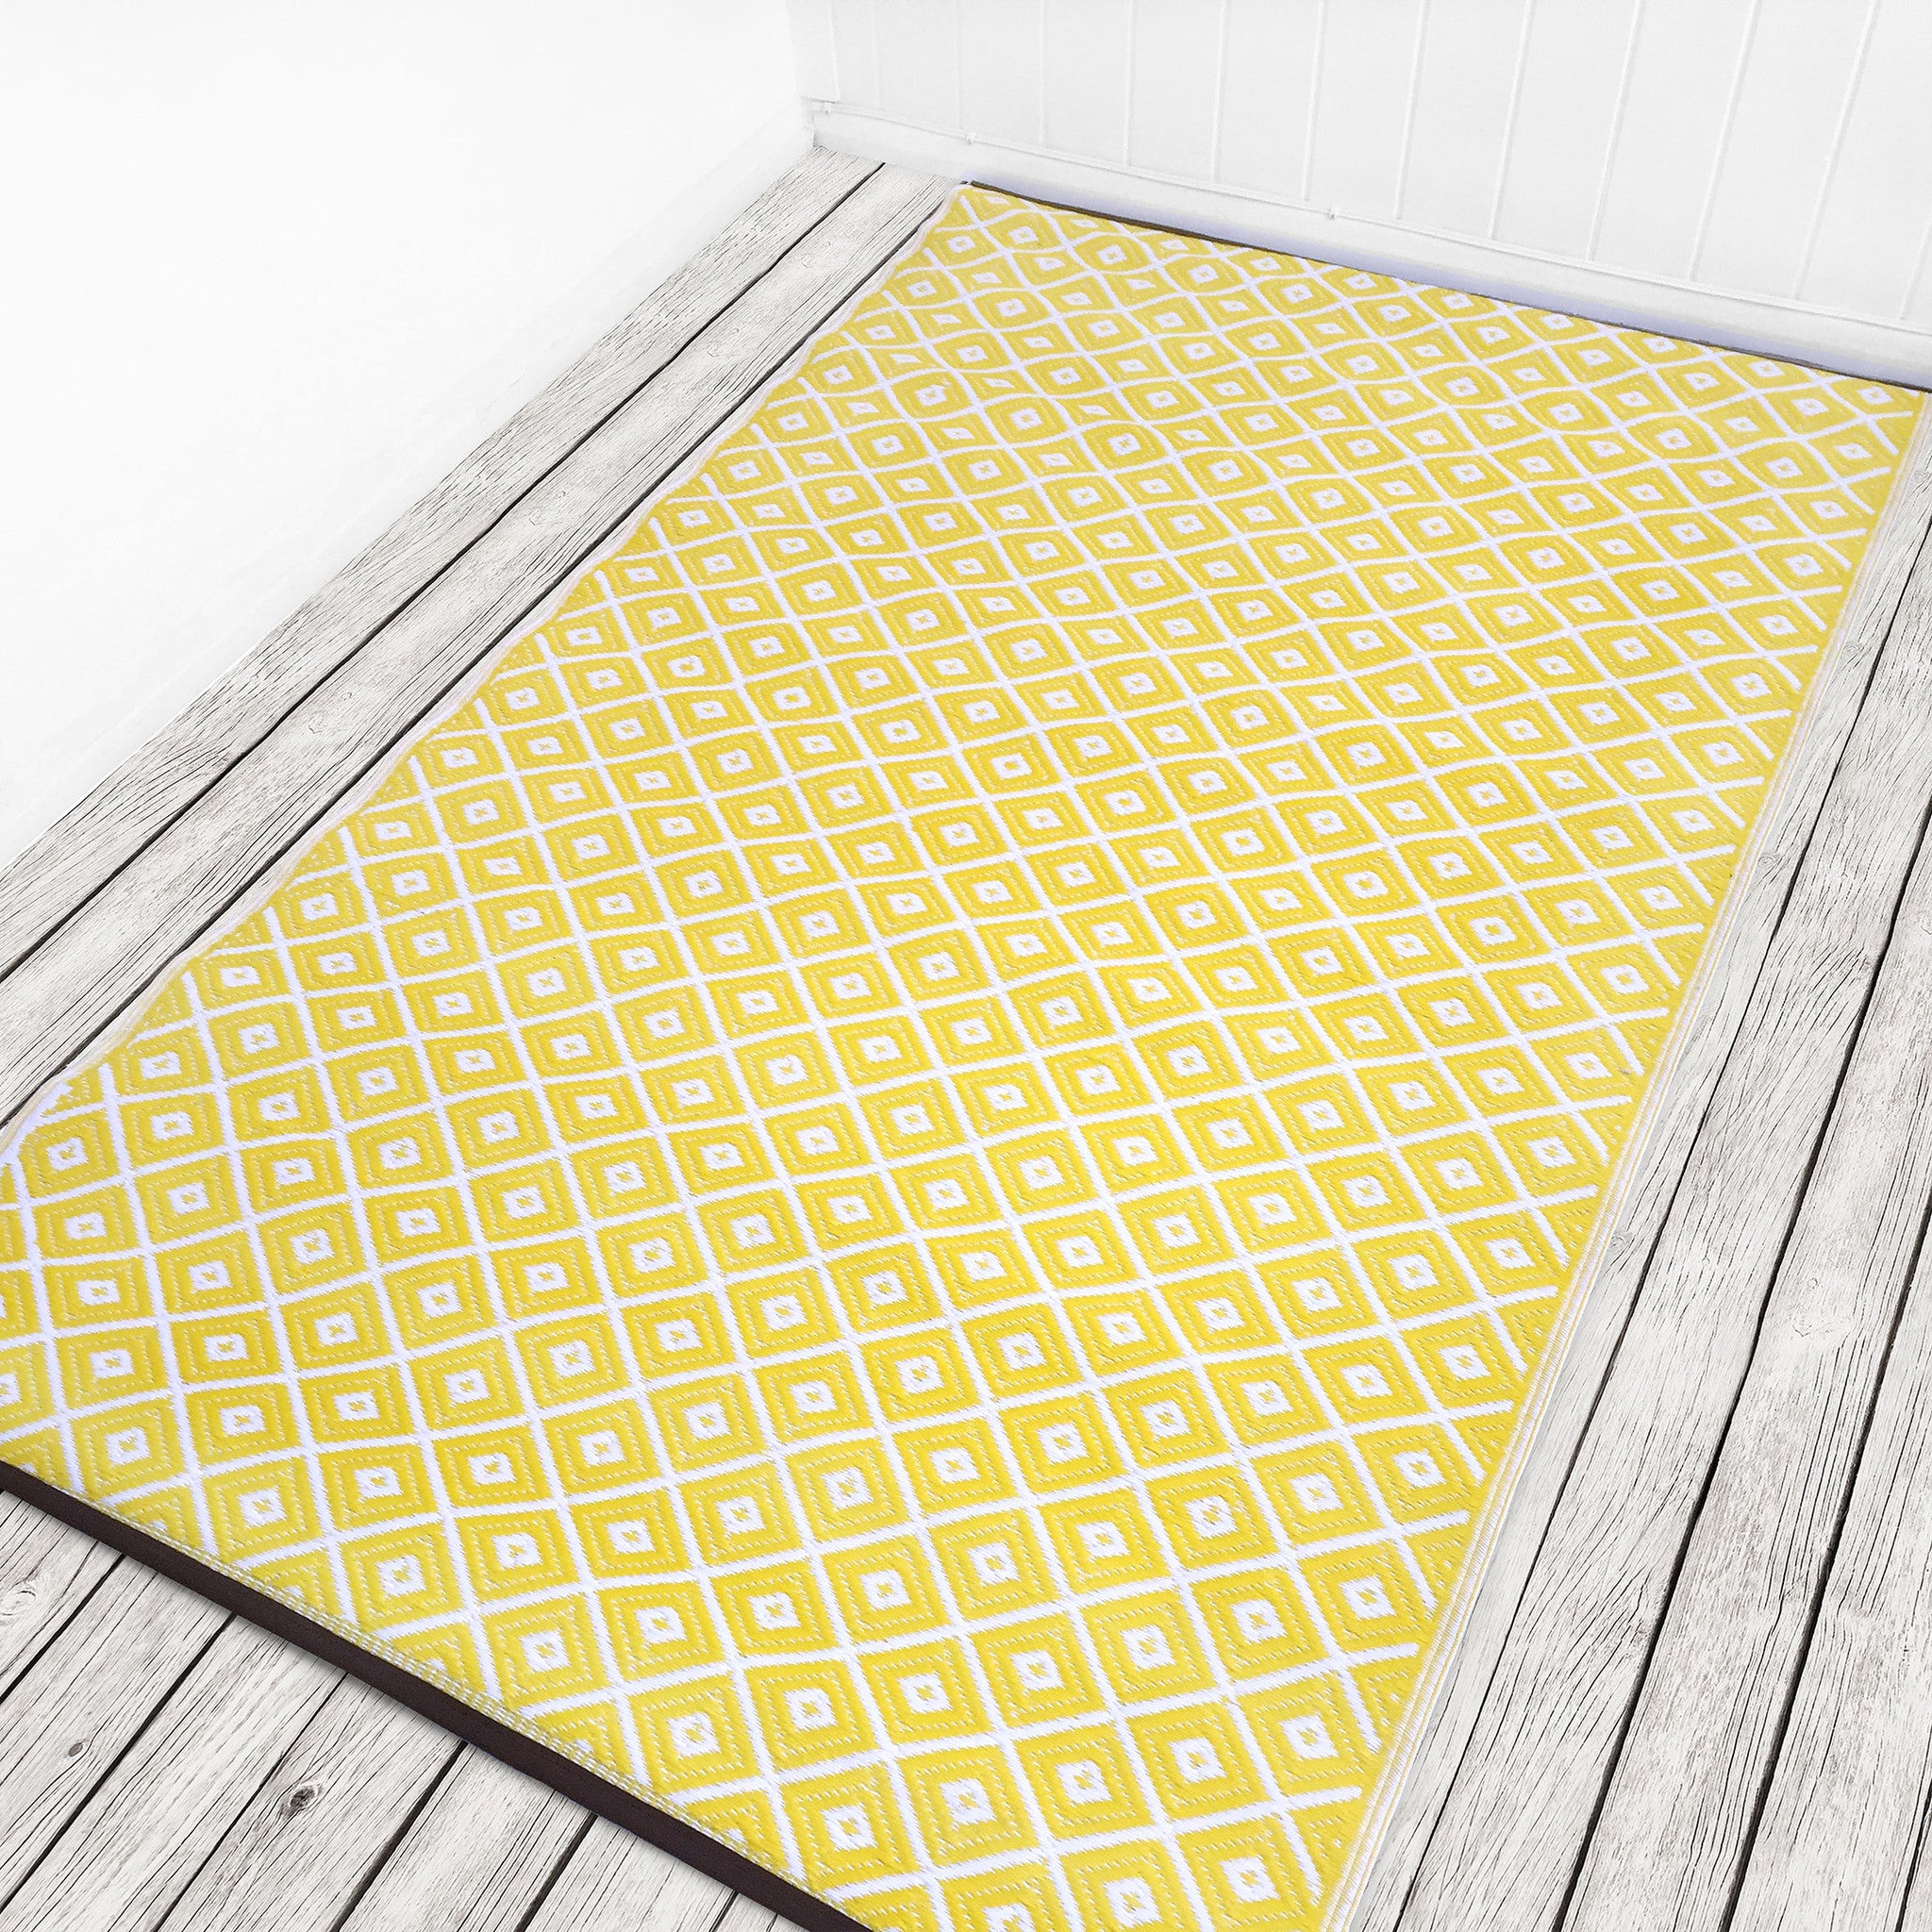 Recycled Plastic Outdoor Rugs Uk: Yellow And White Indoor Outdoor Rug UK